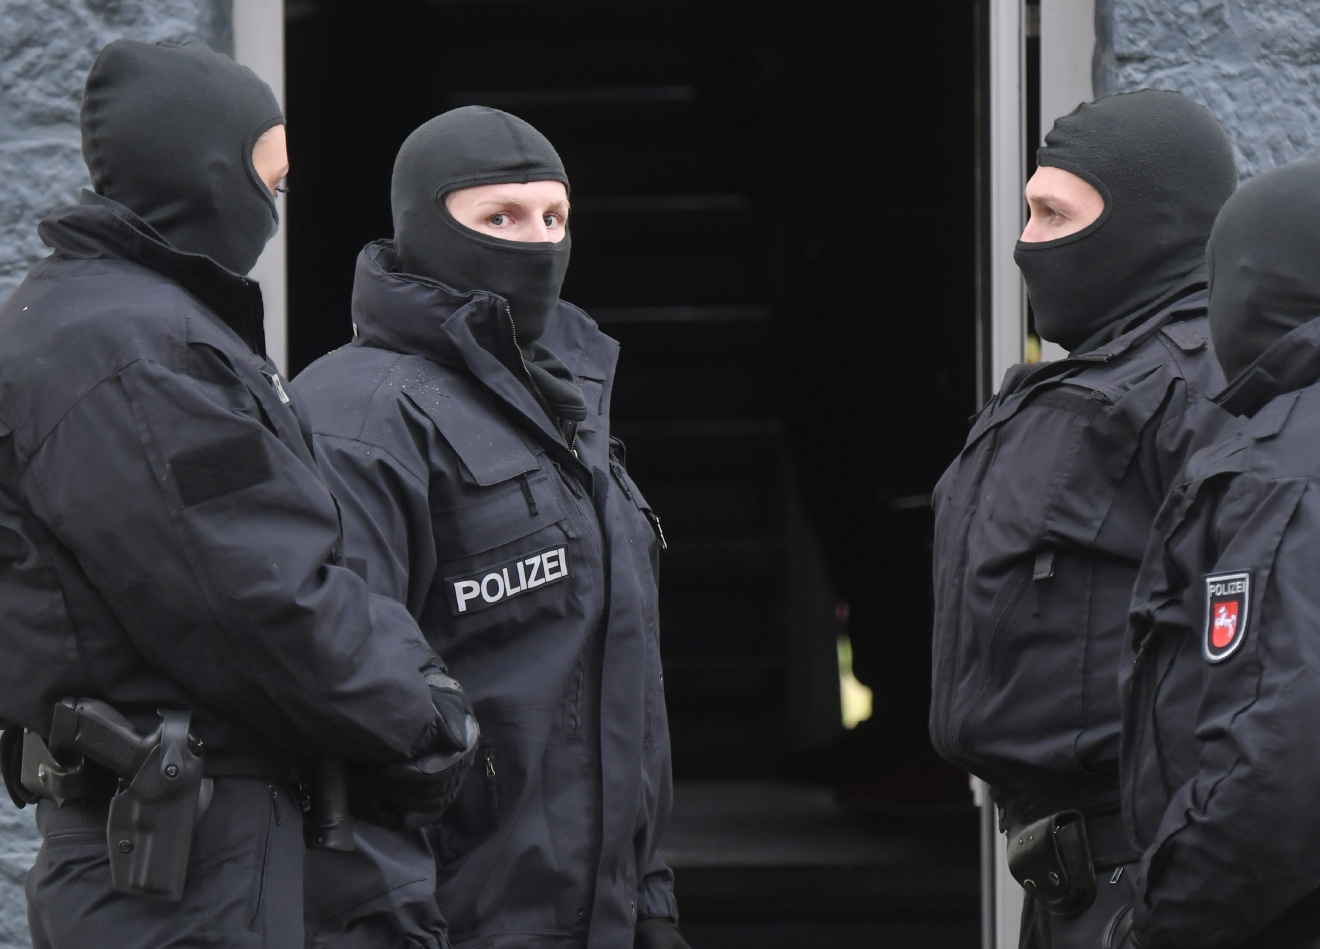 Police officers seach a residential building opposite the German-Speaking Islamic Circle Hildesheim mosque in Hildesheim, Germany, Tuesday, Nov. 8, 2016. (Julian?Stratenschulte/dpa via AP)